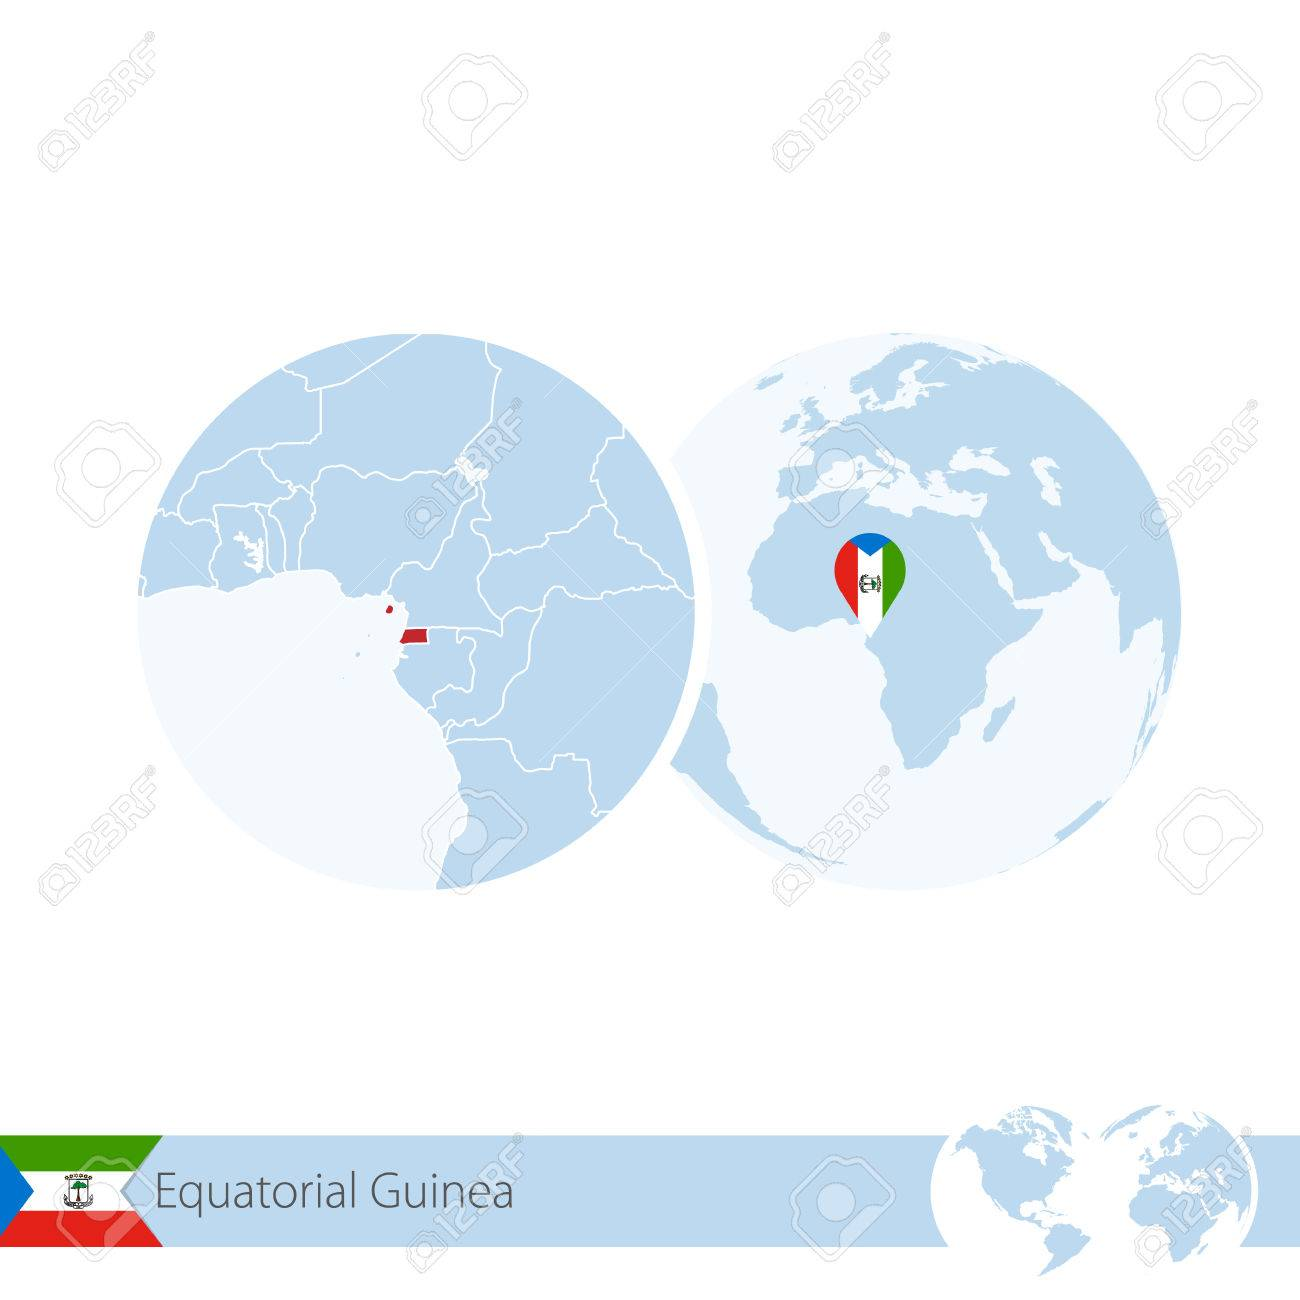 Equatorial Guinea on world globe with flag and regional map of..